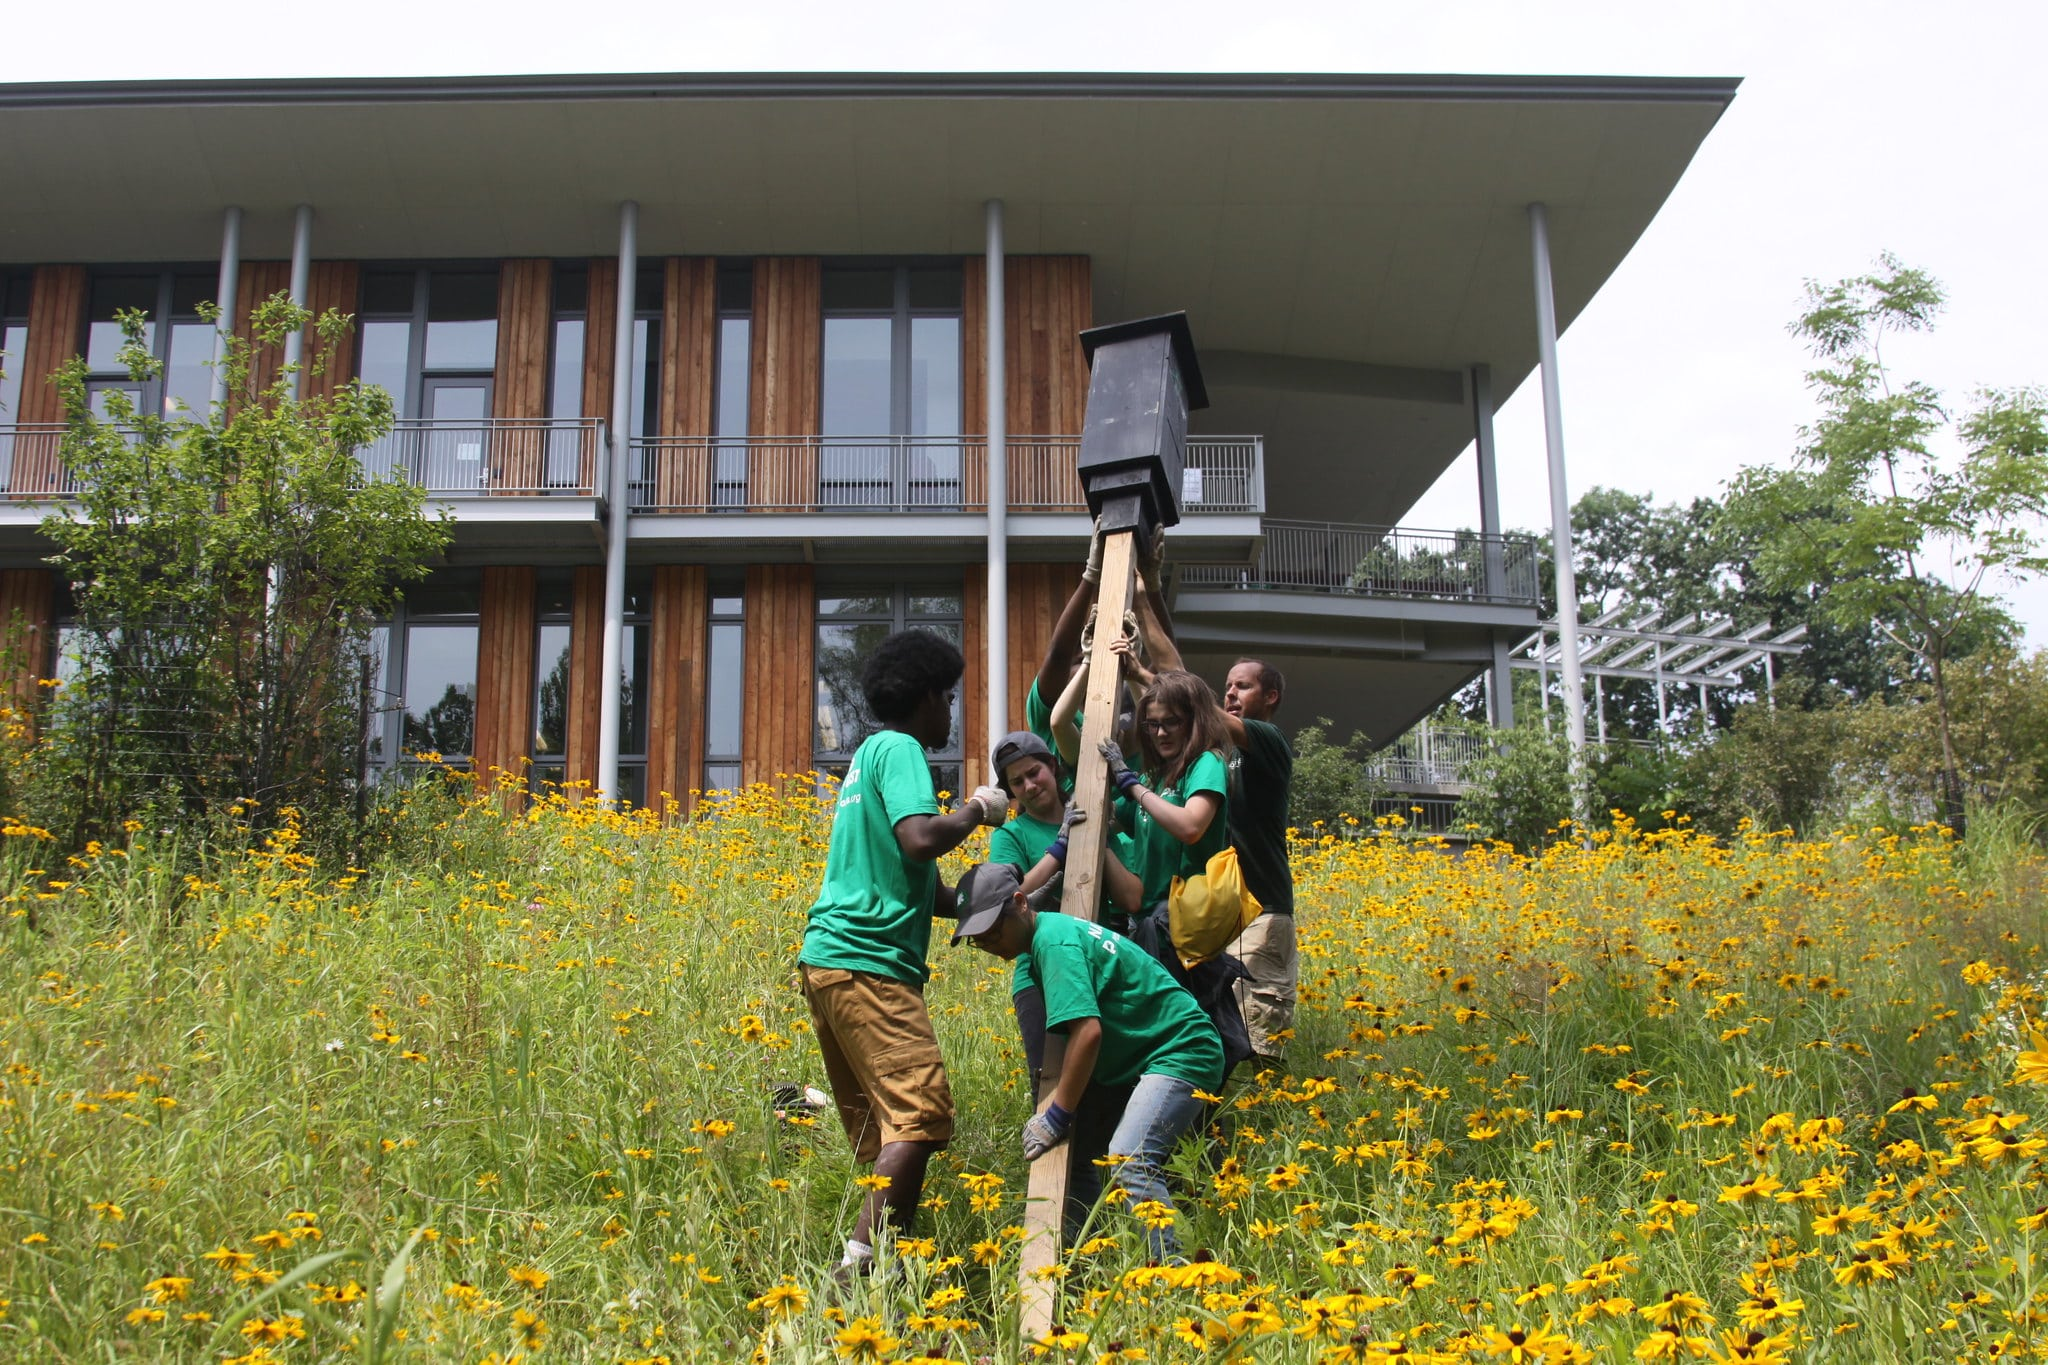 Pittsburgh Parks Conservancy staff moving a birdhouse